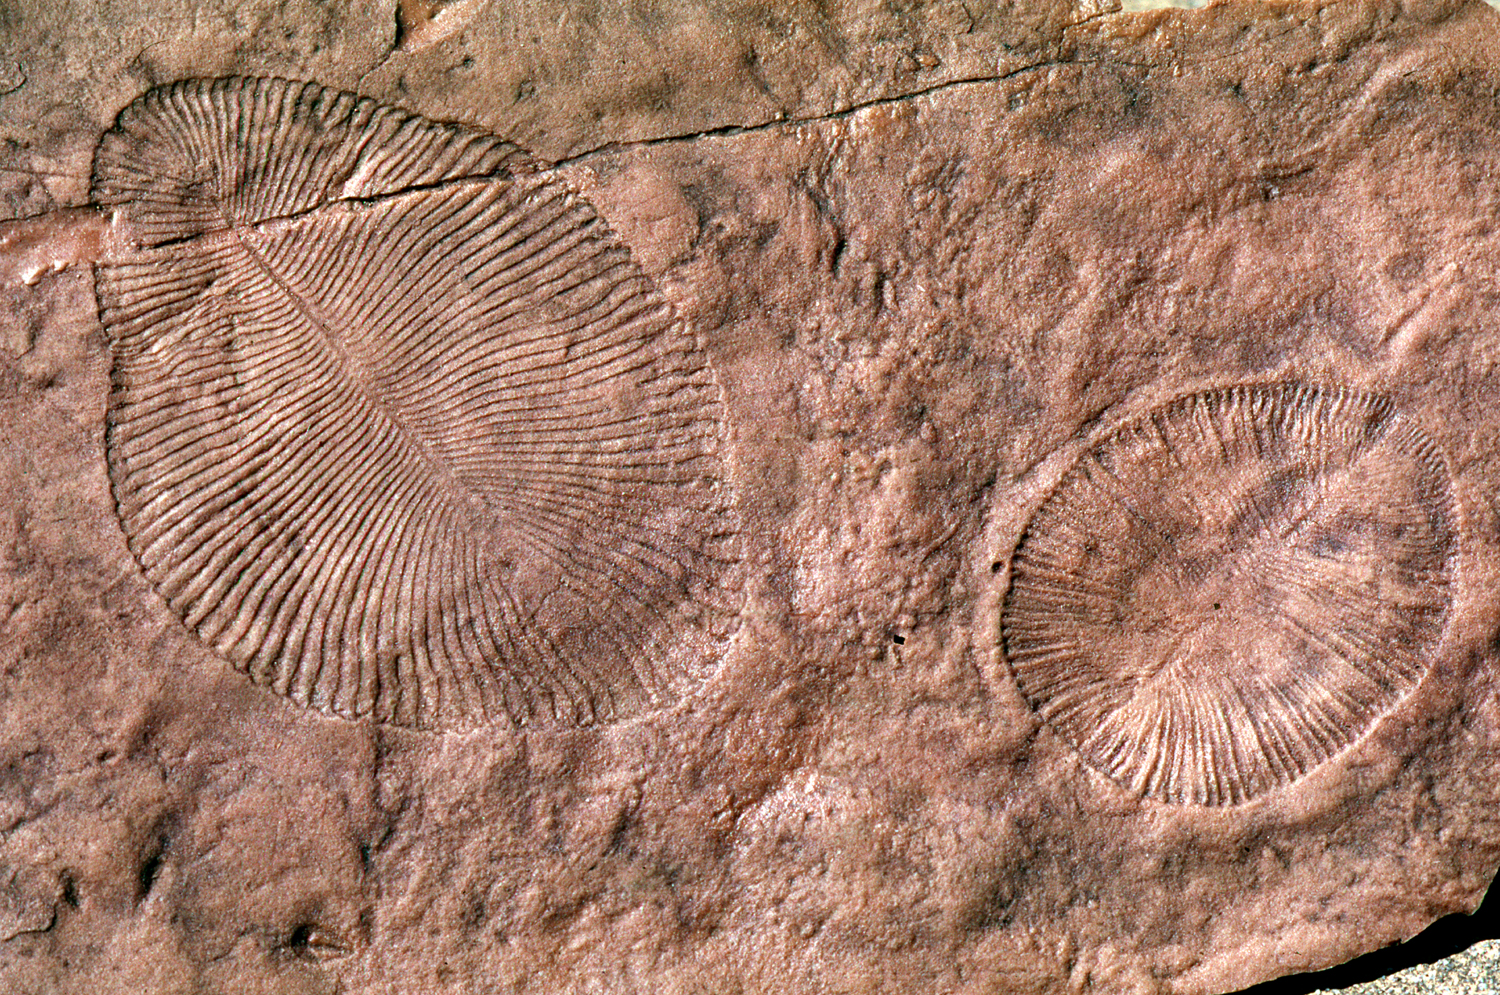 the science of dating rocks by using fossils is called biostratigraphy